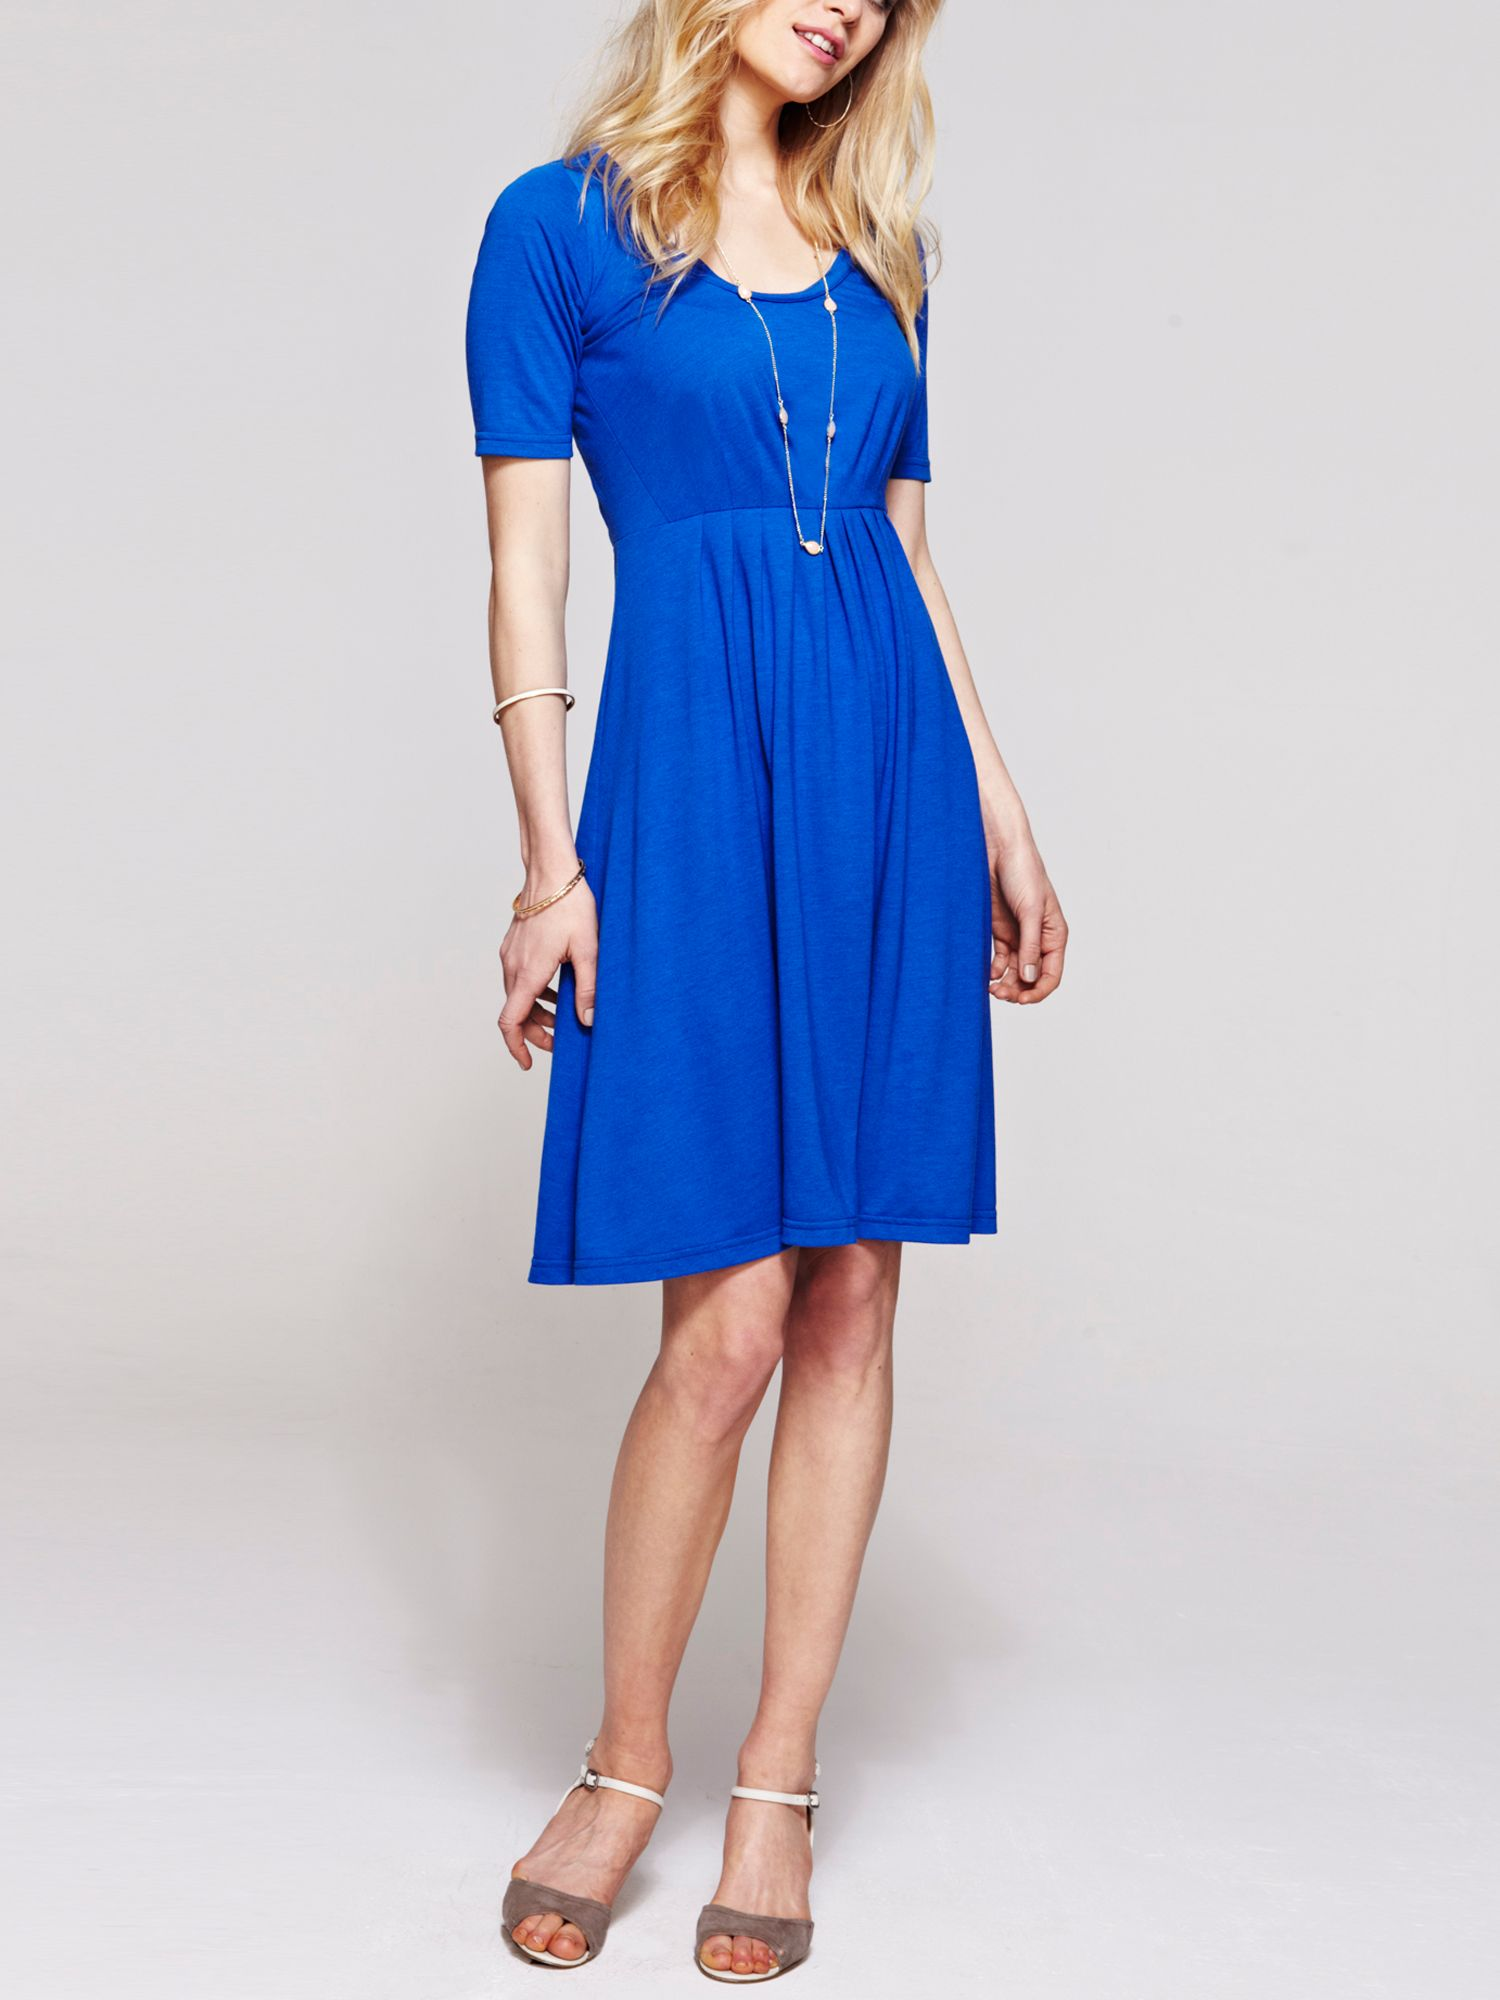 CoolFresh round neck short sleeved dress